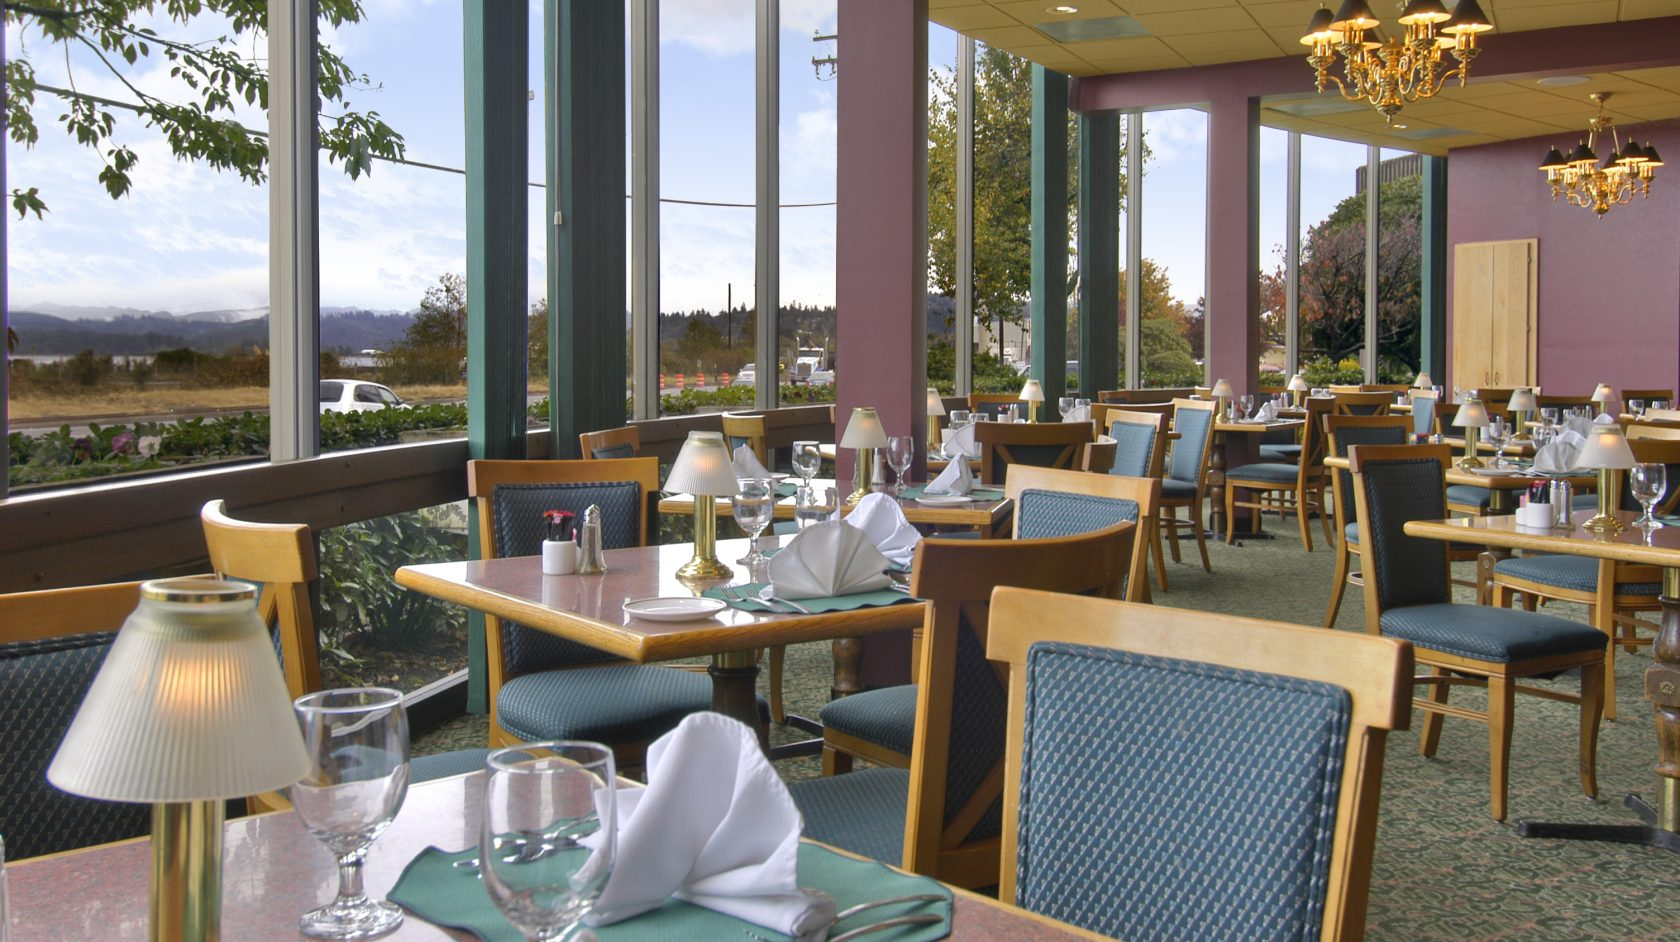 Coos bay casino restaurant